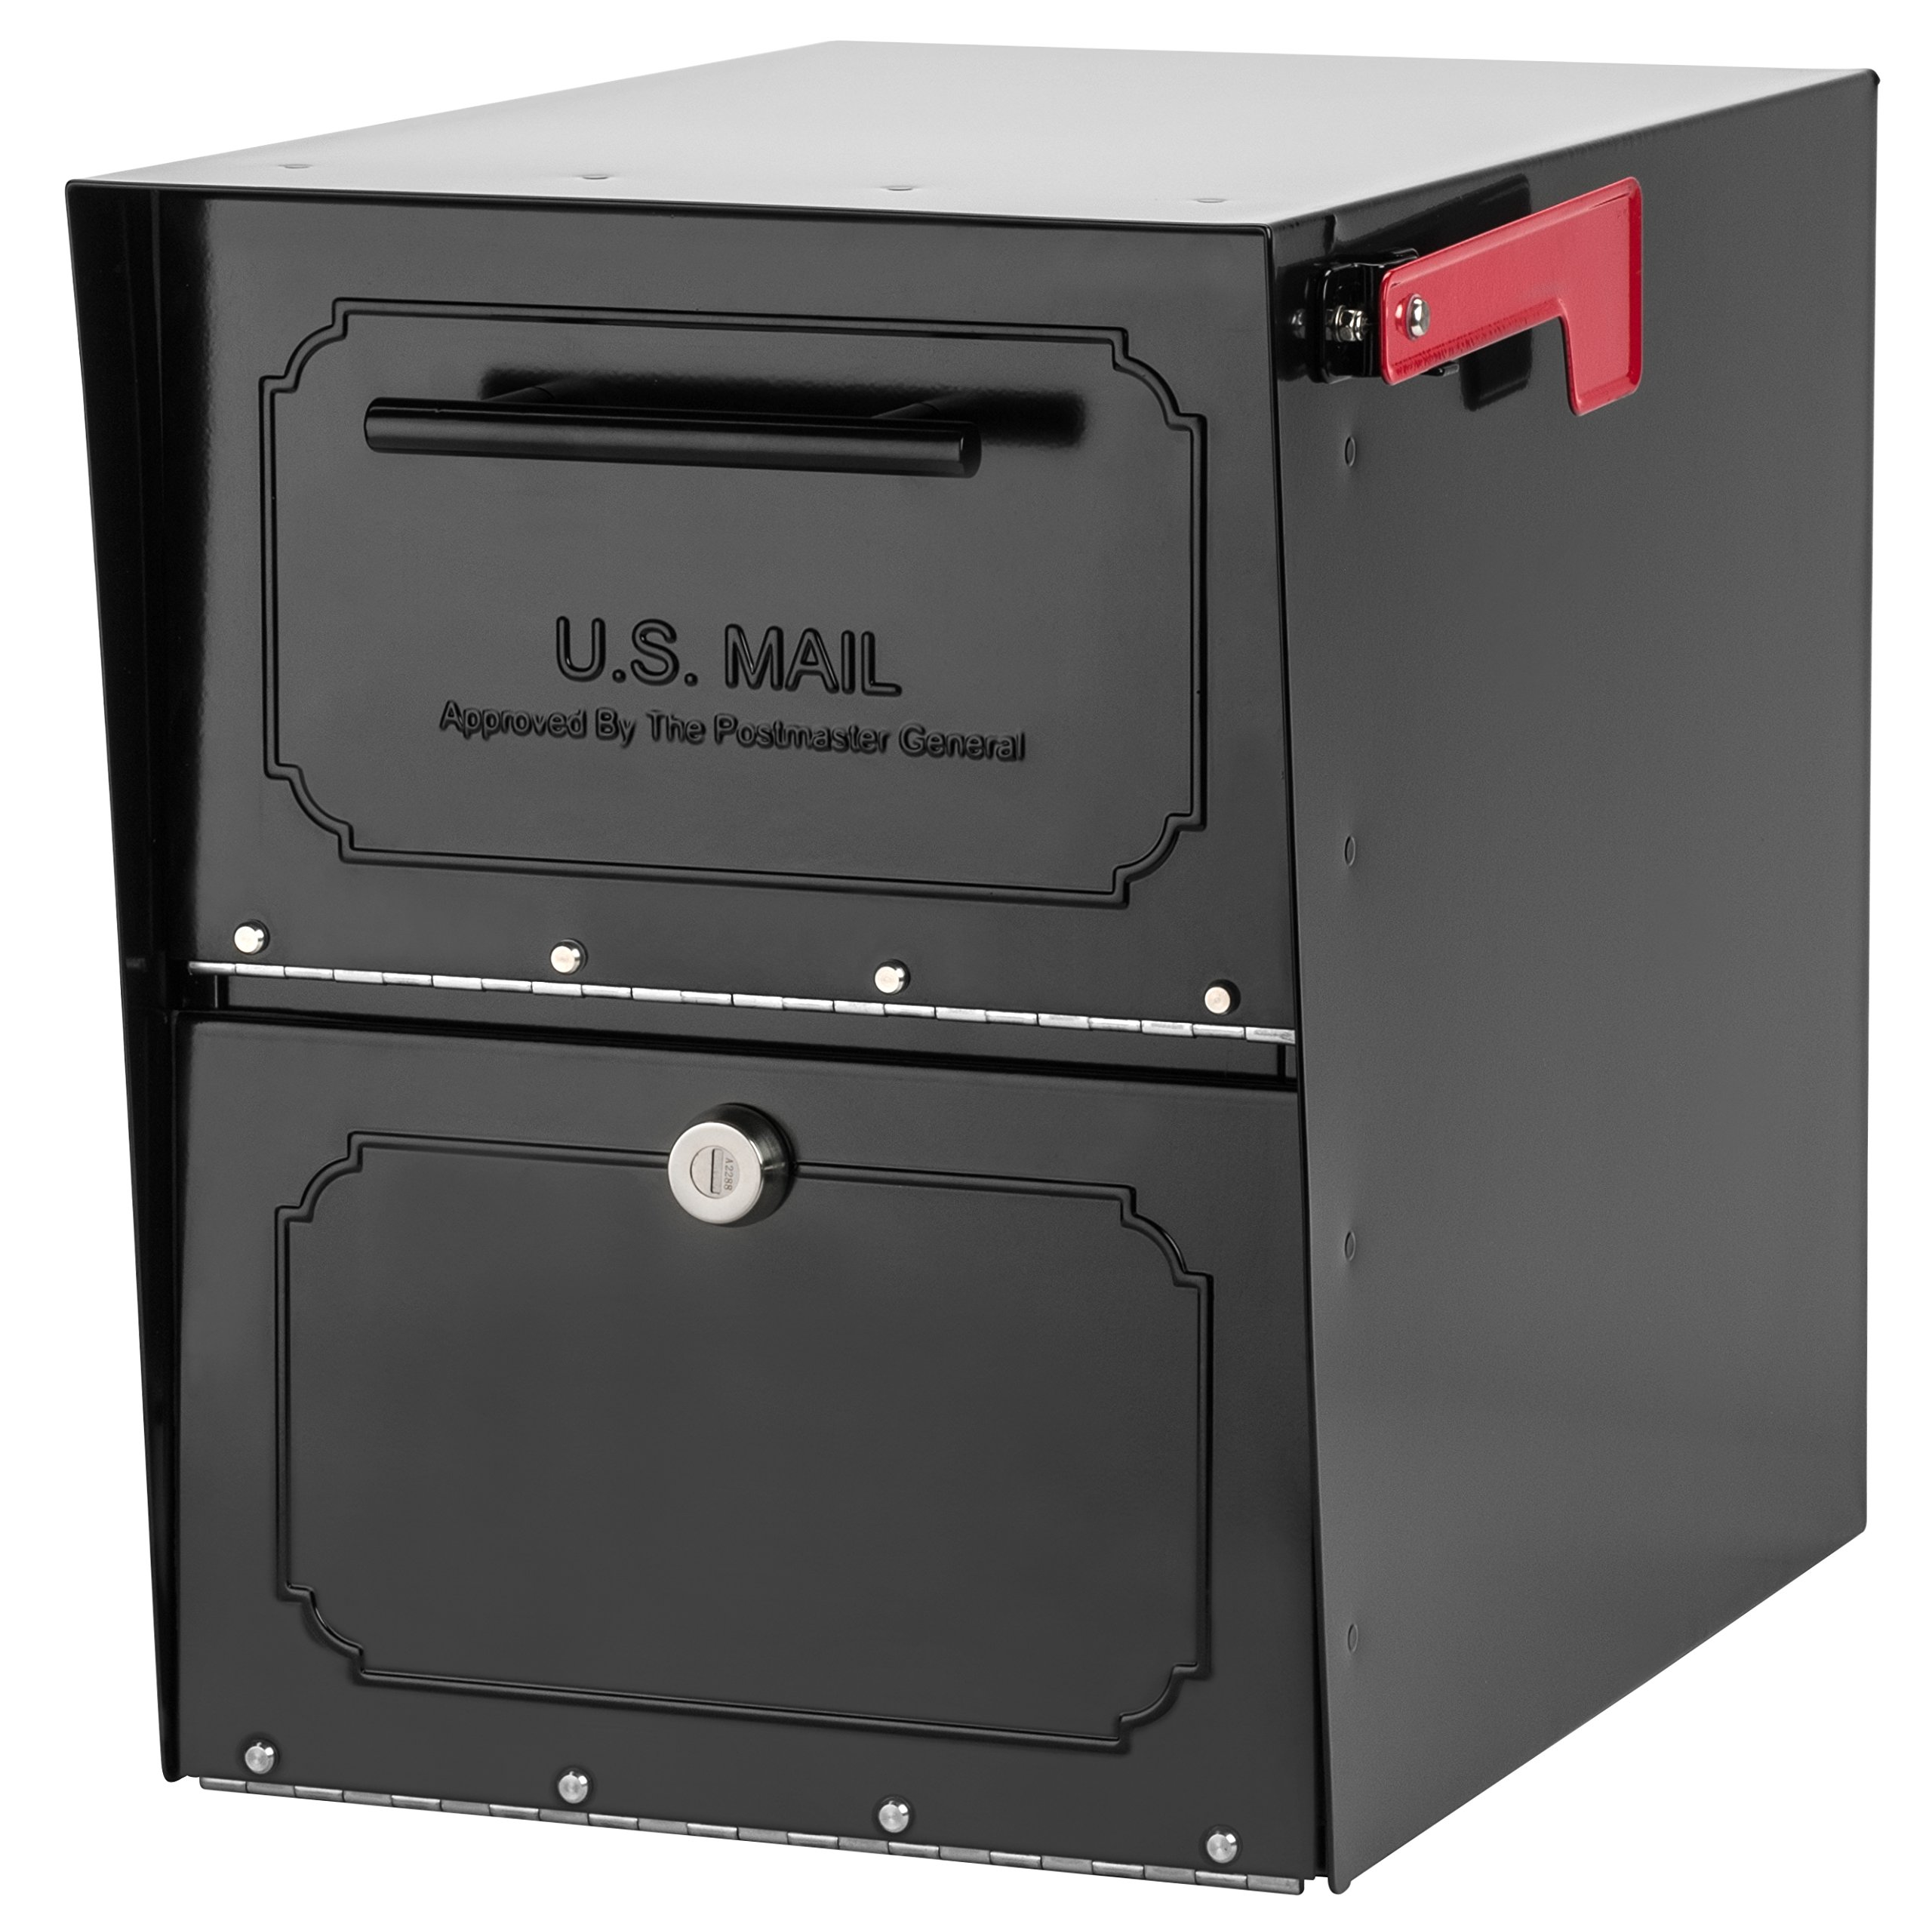 Architectural Mailboxes 6200B-10  Oasis Classic Locking Post Mount Parcel Mailbox with High Security Reinforced Lock by ARCHITECTURAL MAILBOXES (Image #1)